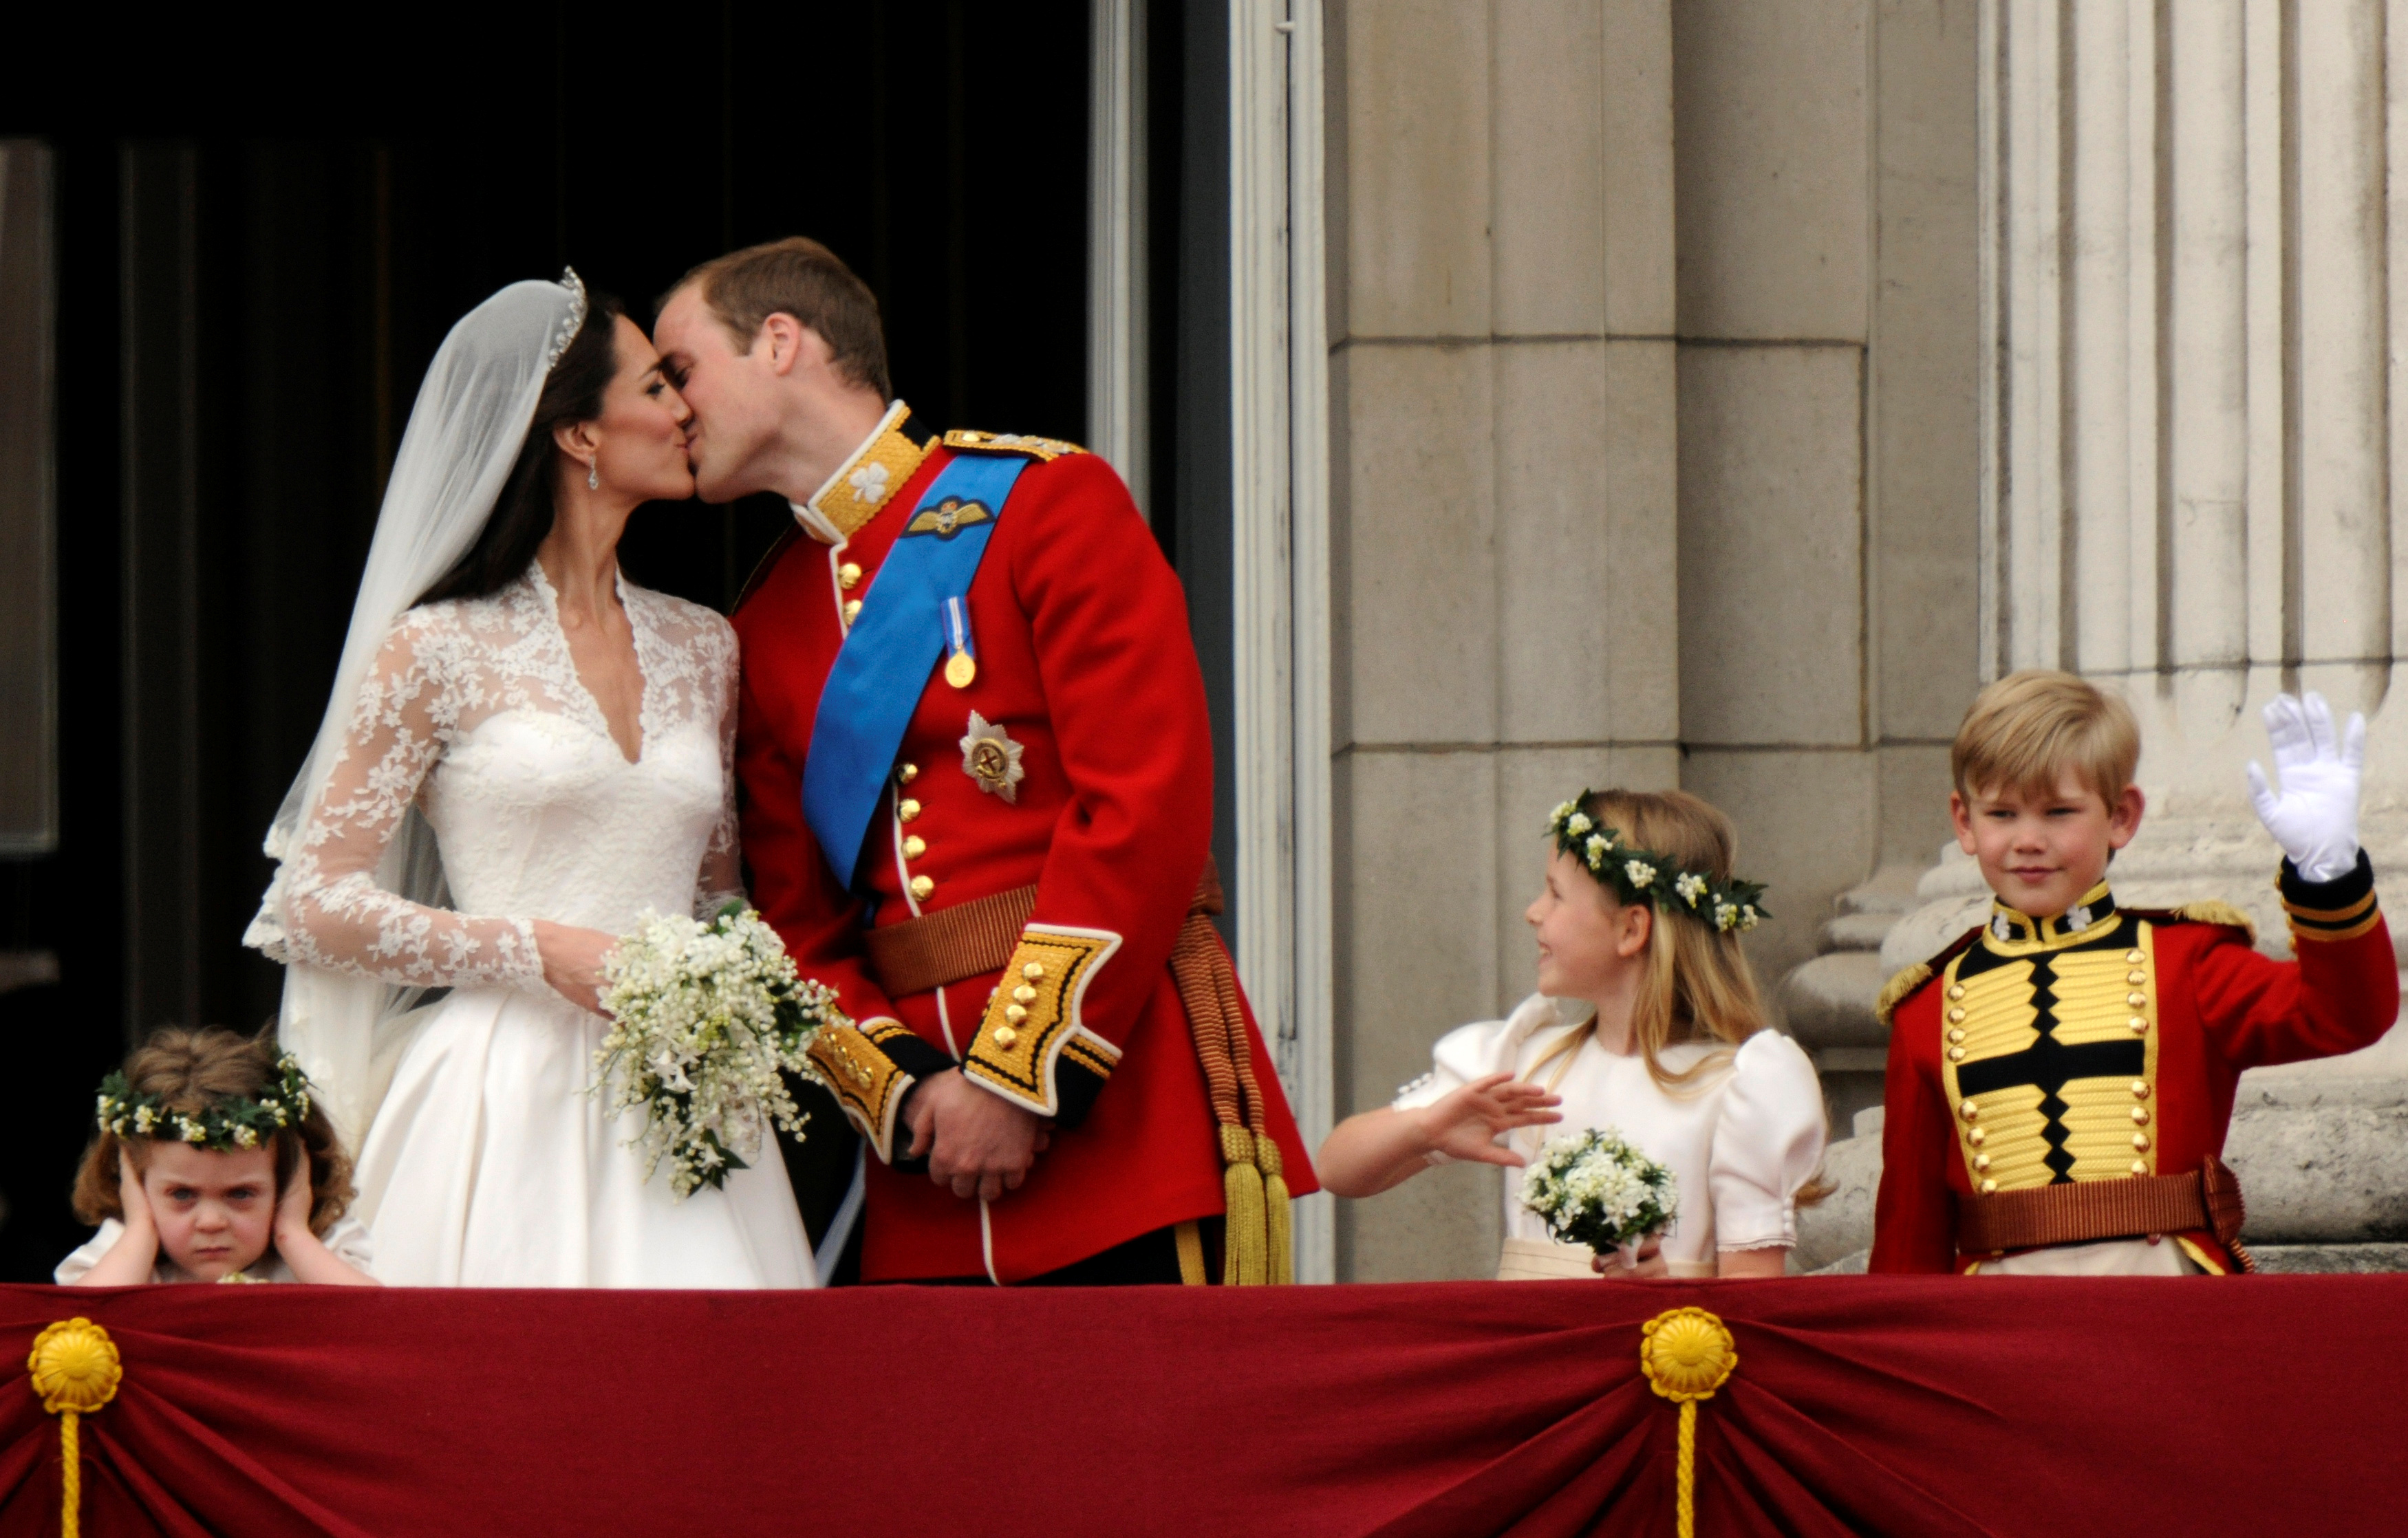 El príncipe William del Reino Unido y su esposa Catherine, Duquesa de Cambridge, se besan en el balcón del Palacio de Buckingham después de su boda en la Abadía de Westminster en Londres, el 29 de abril de 2011 (REUTERS/Dylan Martinez)